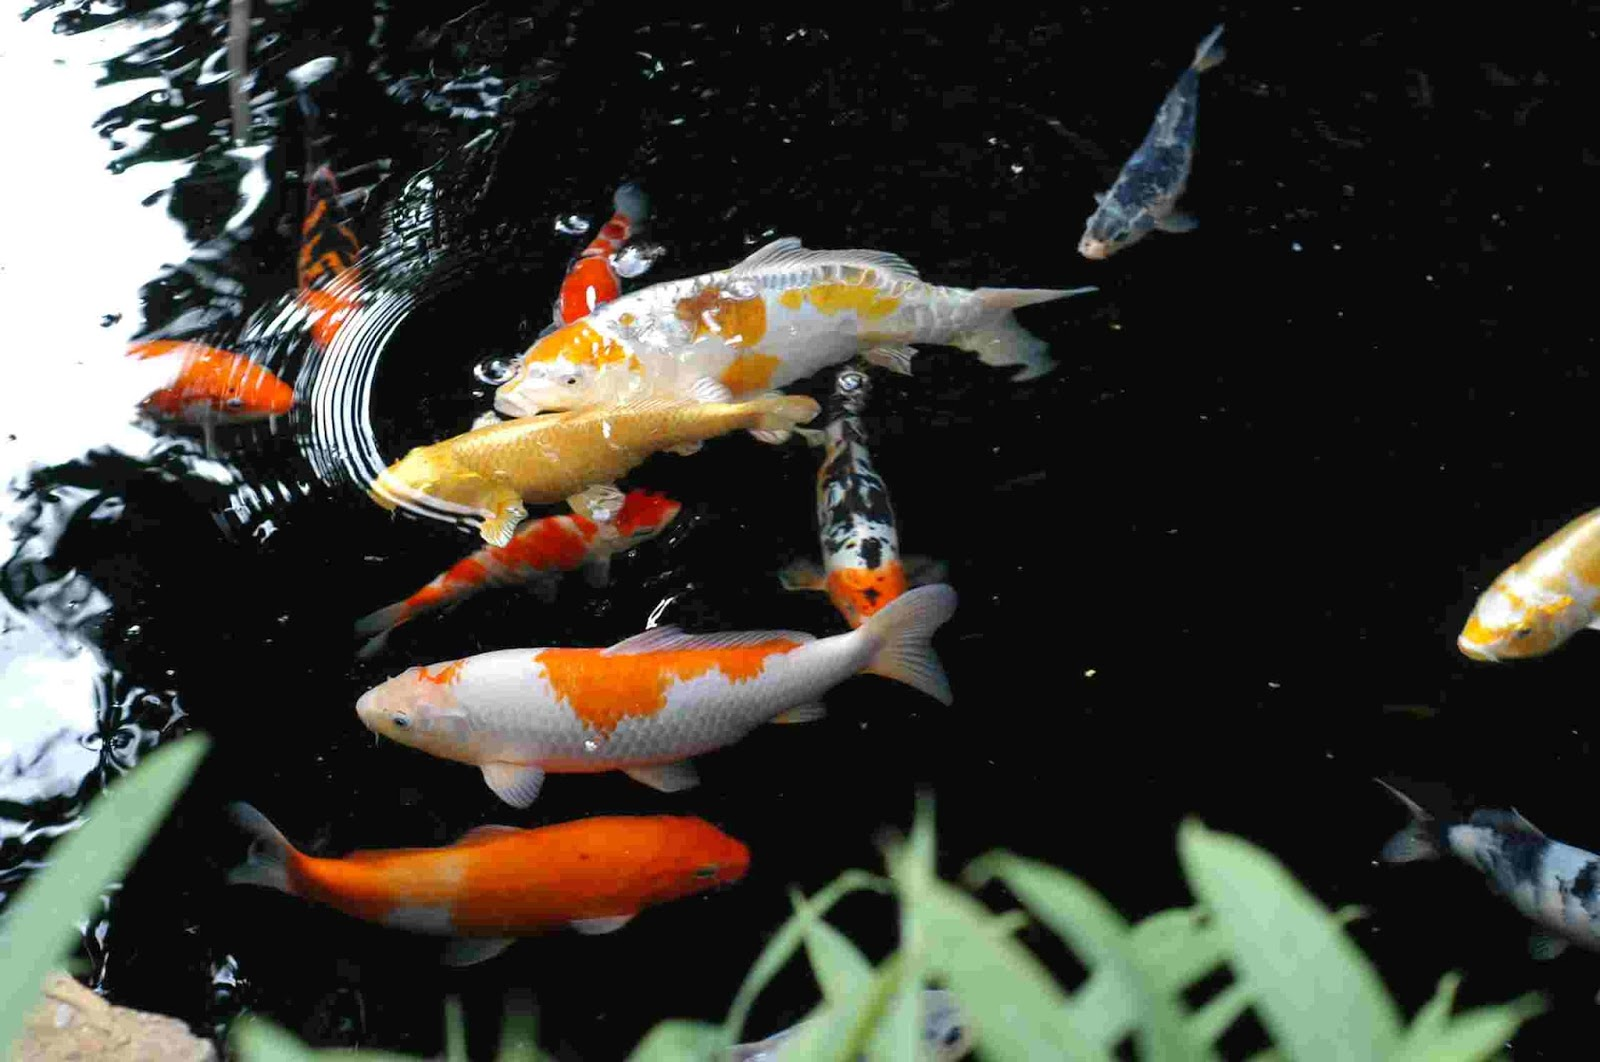 Nature 39 s beauty watergarden news june 2015 for Freshwater koi fish